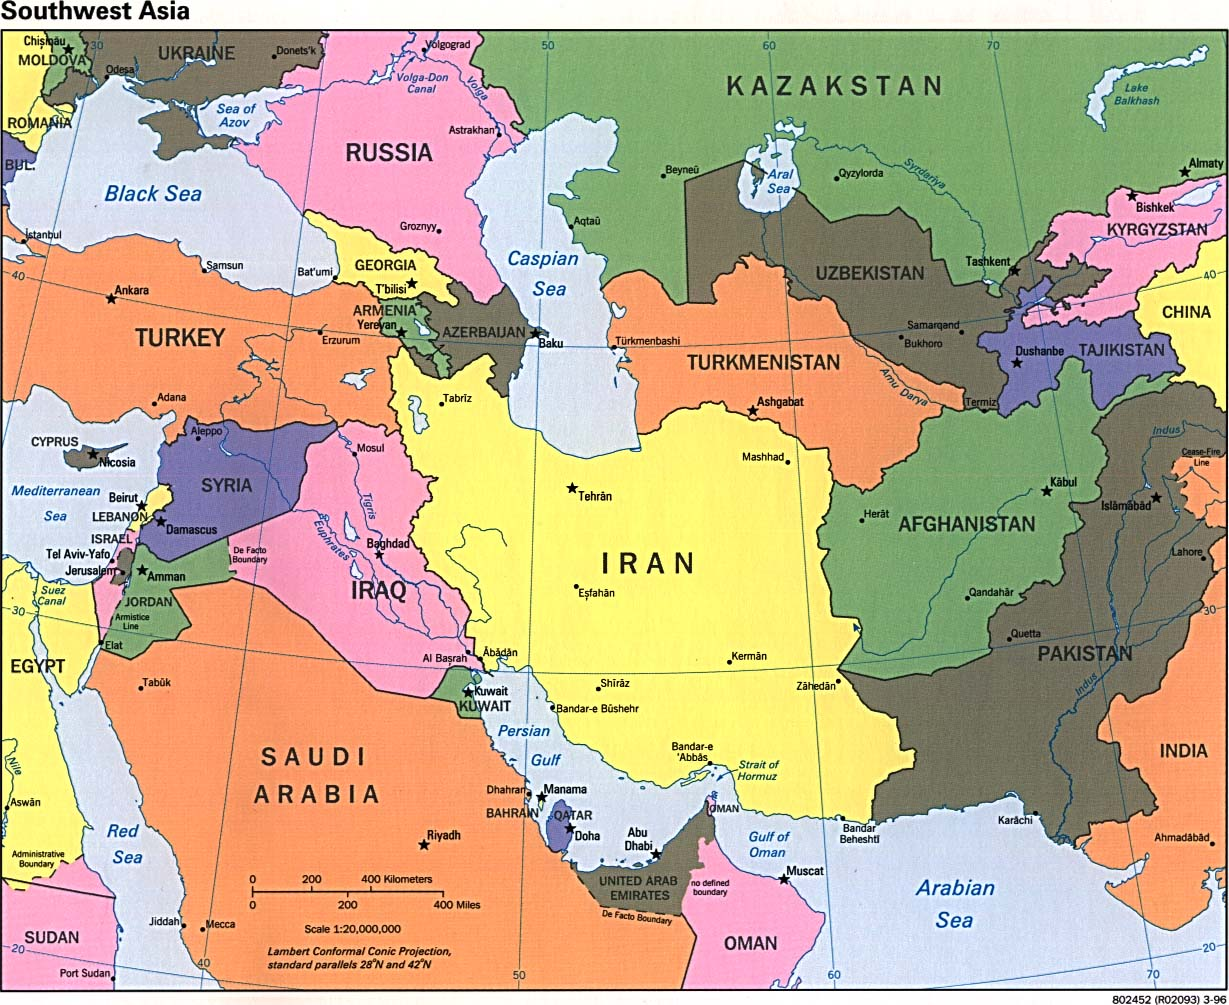 Southwest Asia Political Map 1996